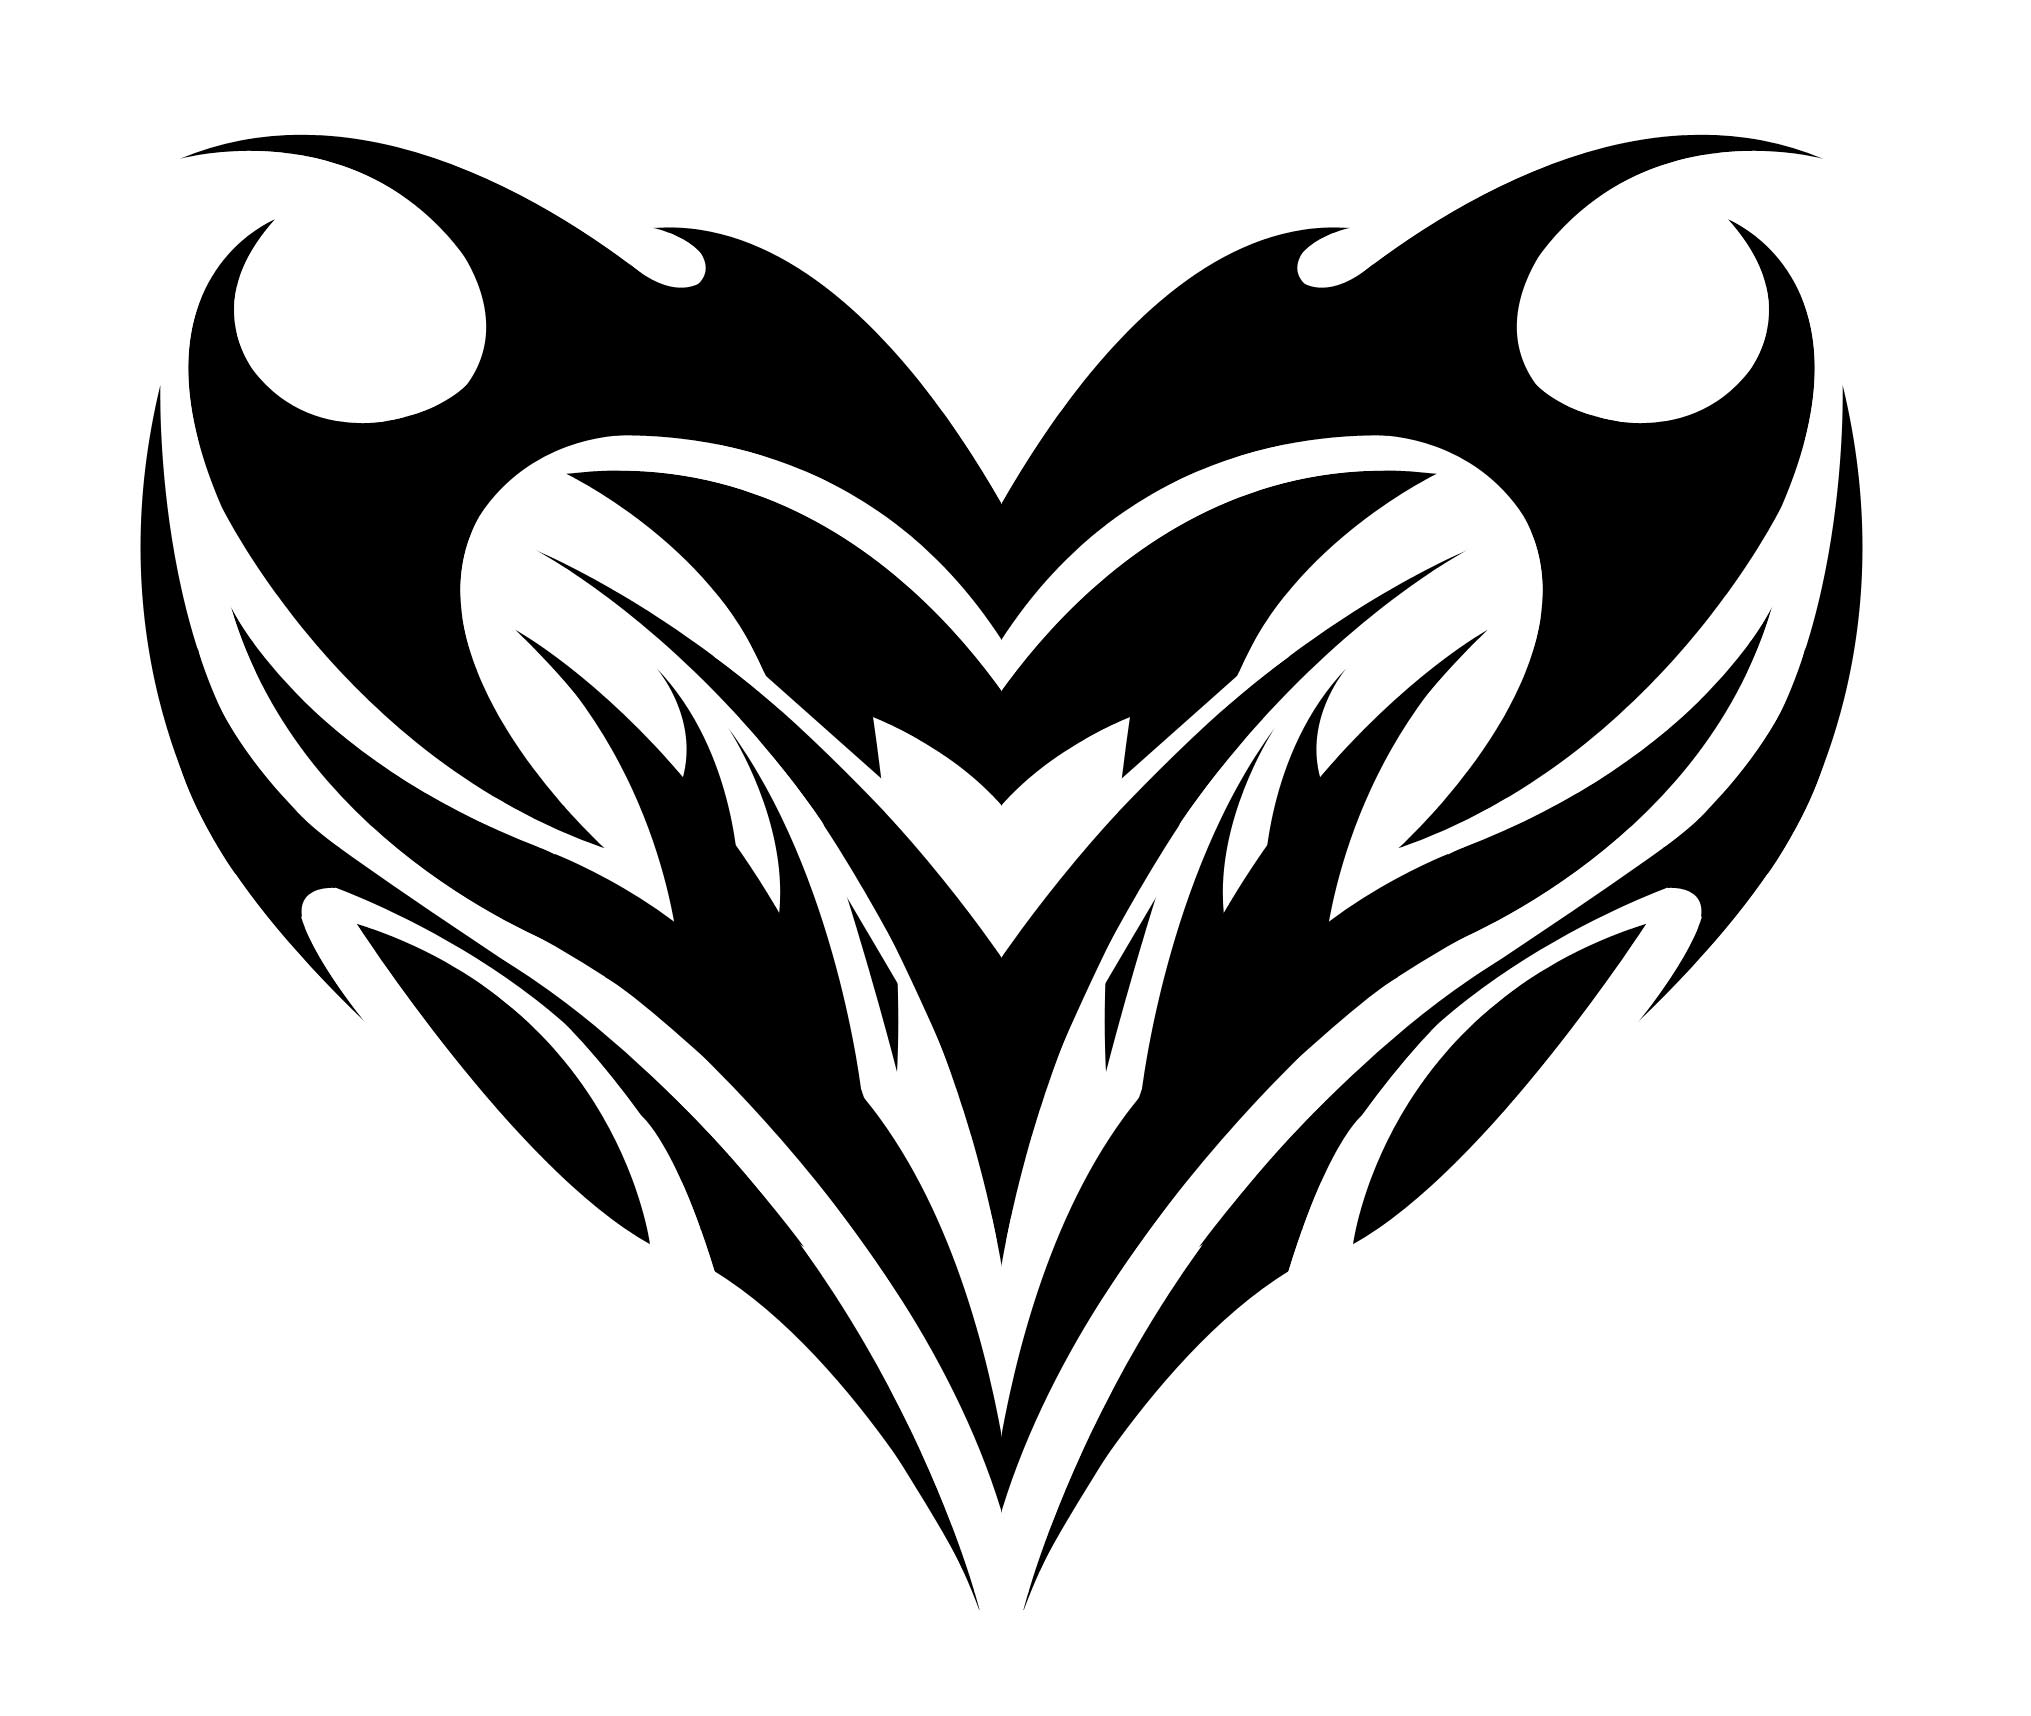 star and heart tattoo designs clipart best. Black Bedroom Furniture Sets. Home Design Ideas